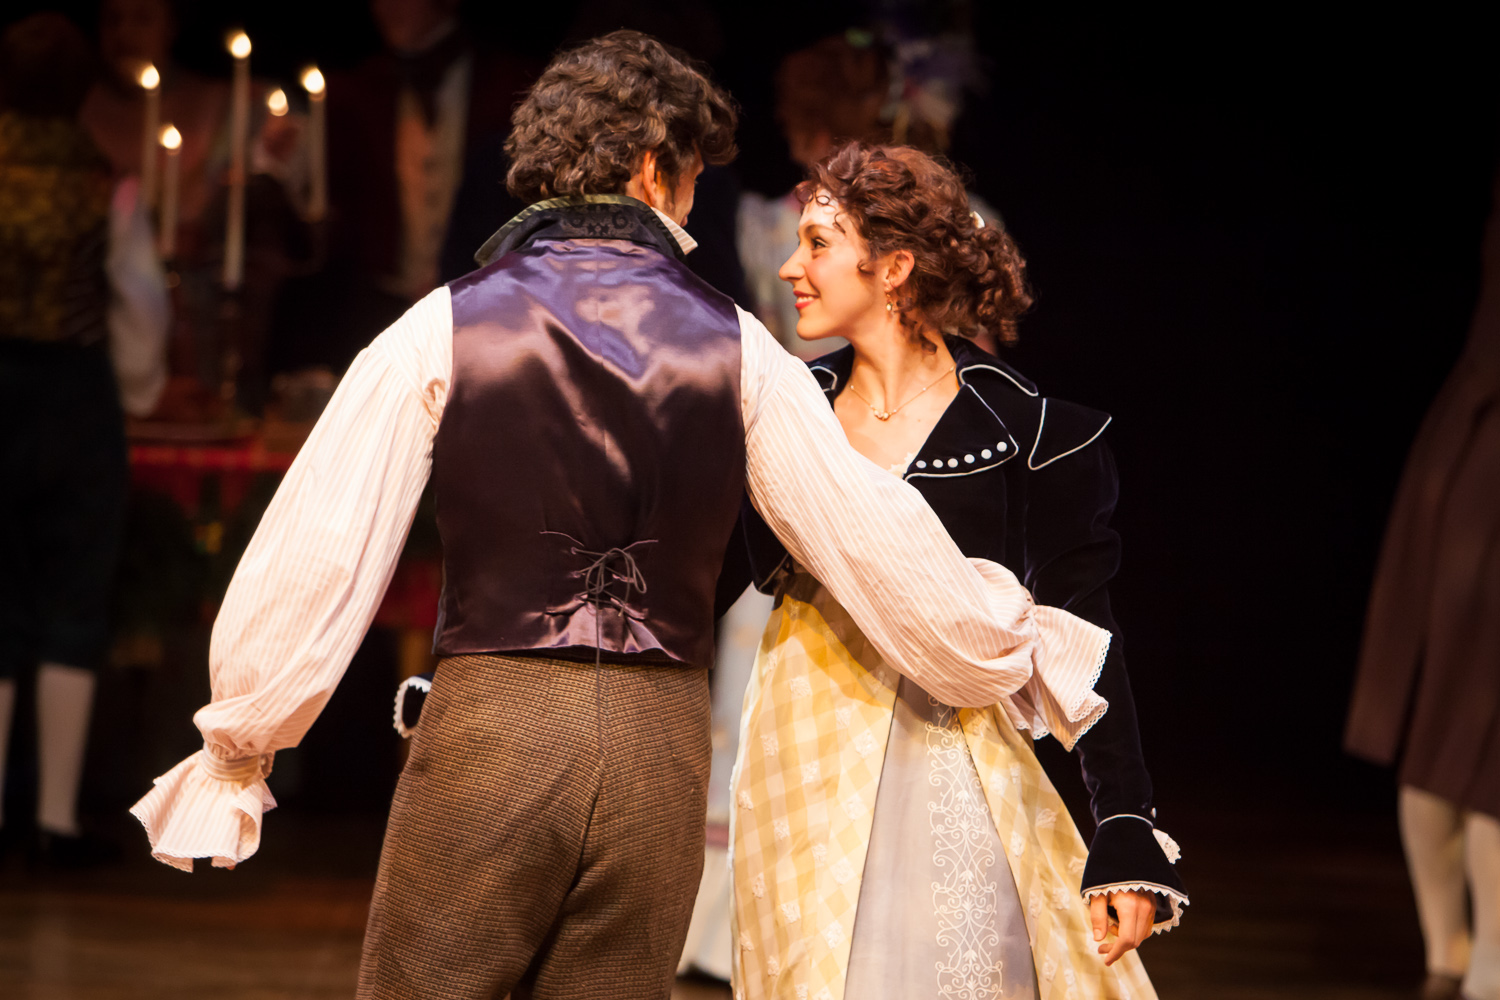 Scott McLean and Courtney Capek in A CHRISTMAS CAROL at the Denver Center Theatre Company, photo by Jennifer Koskinen